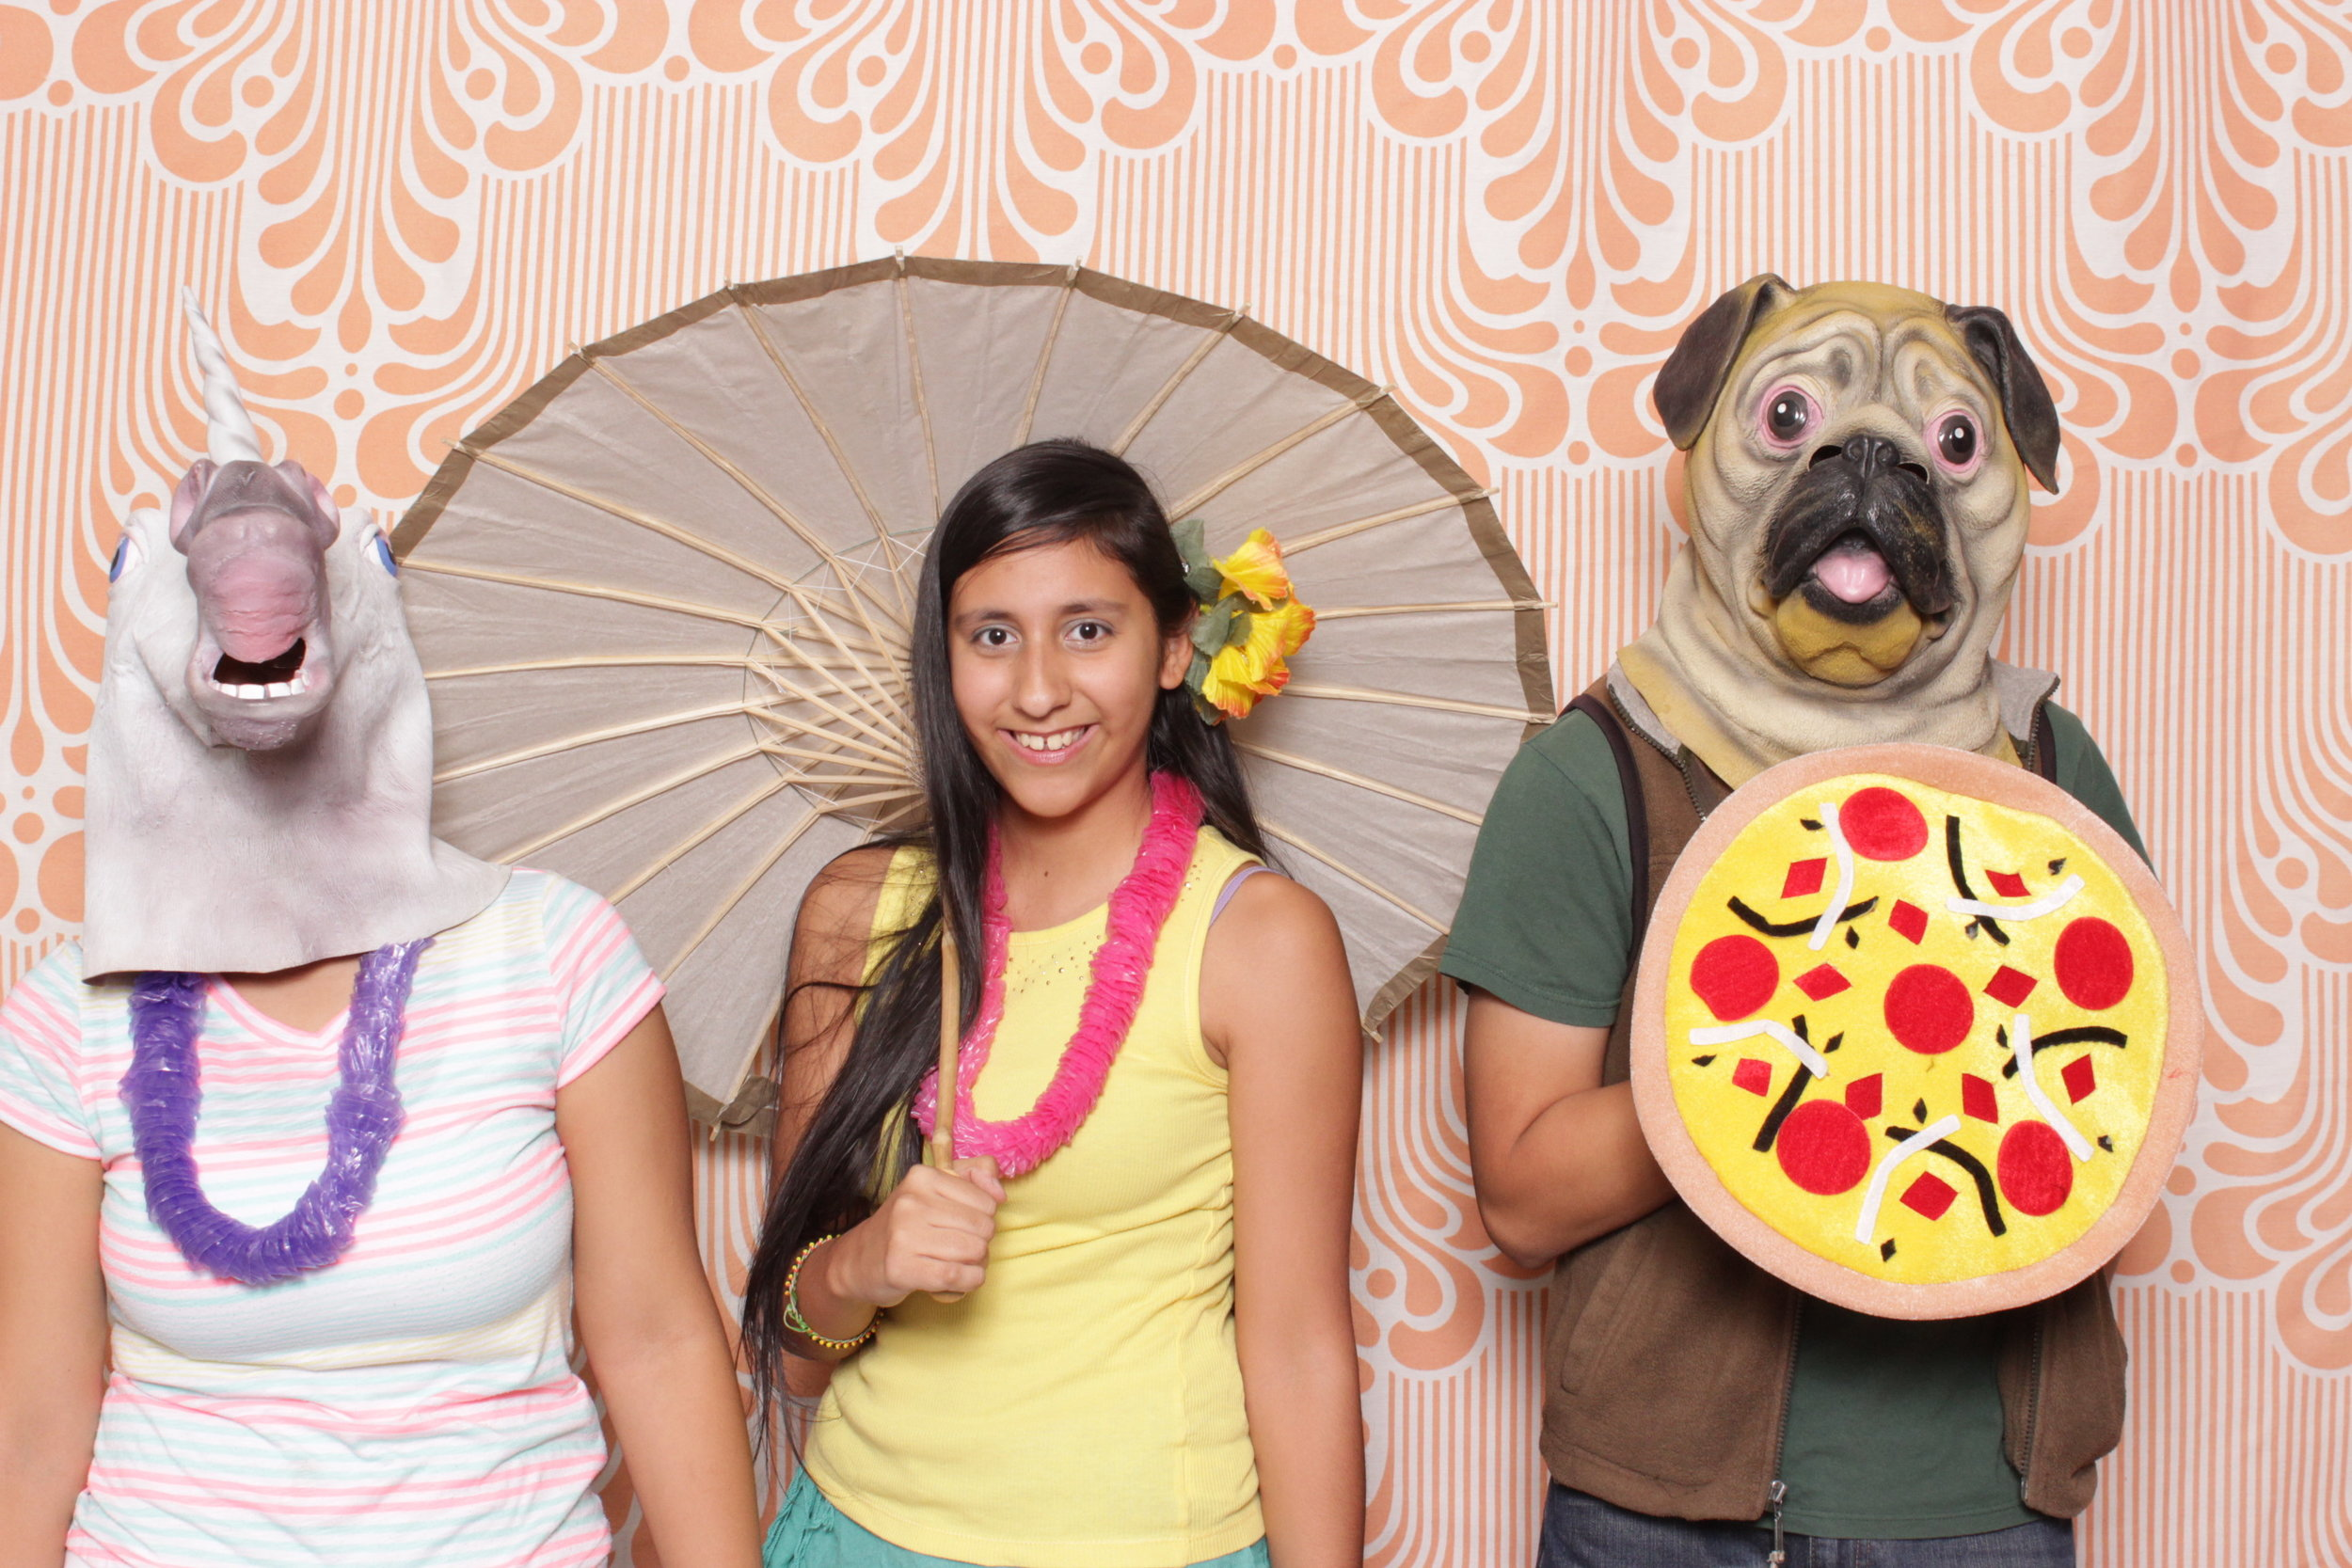 Infinite-hawaiian-luau-party-photo-booth-rental-chico-pizza-pug